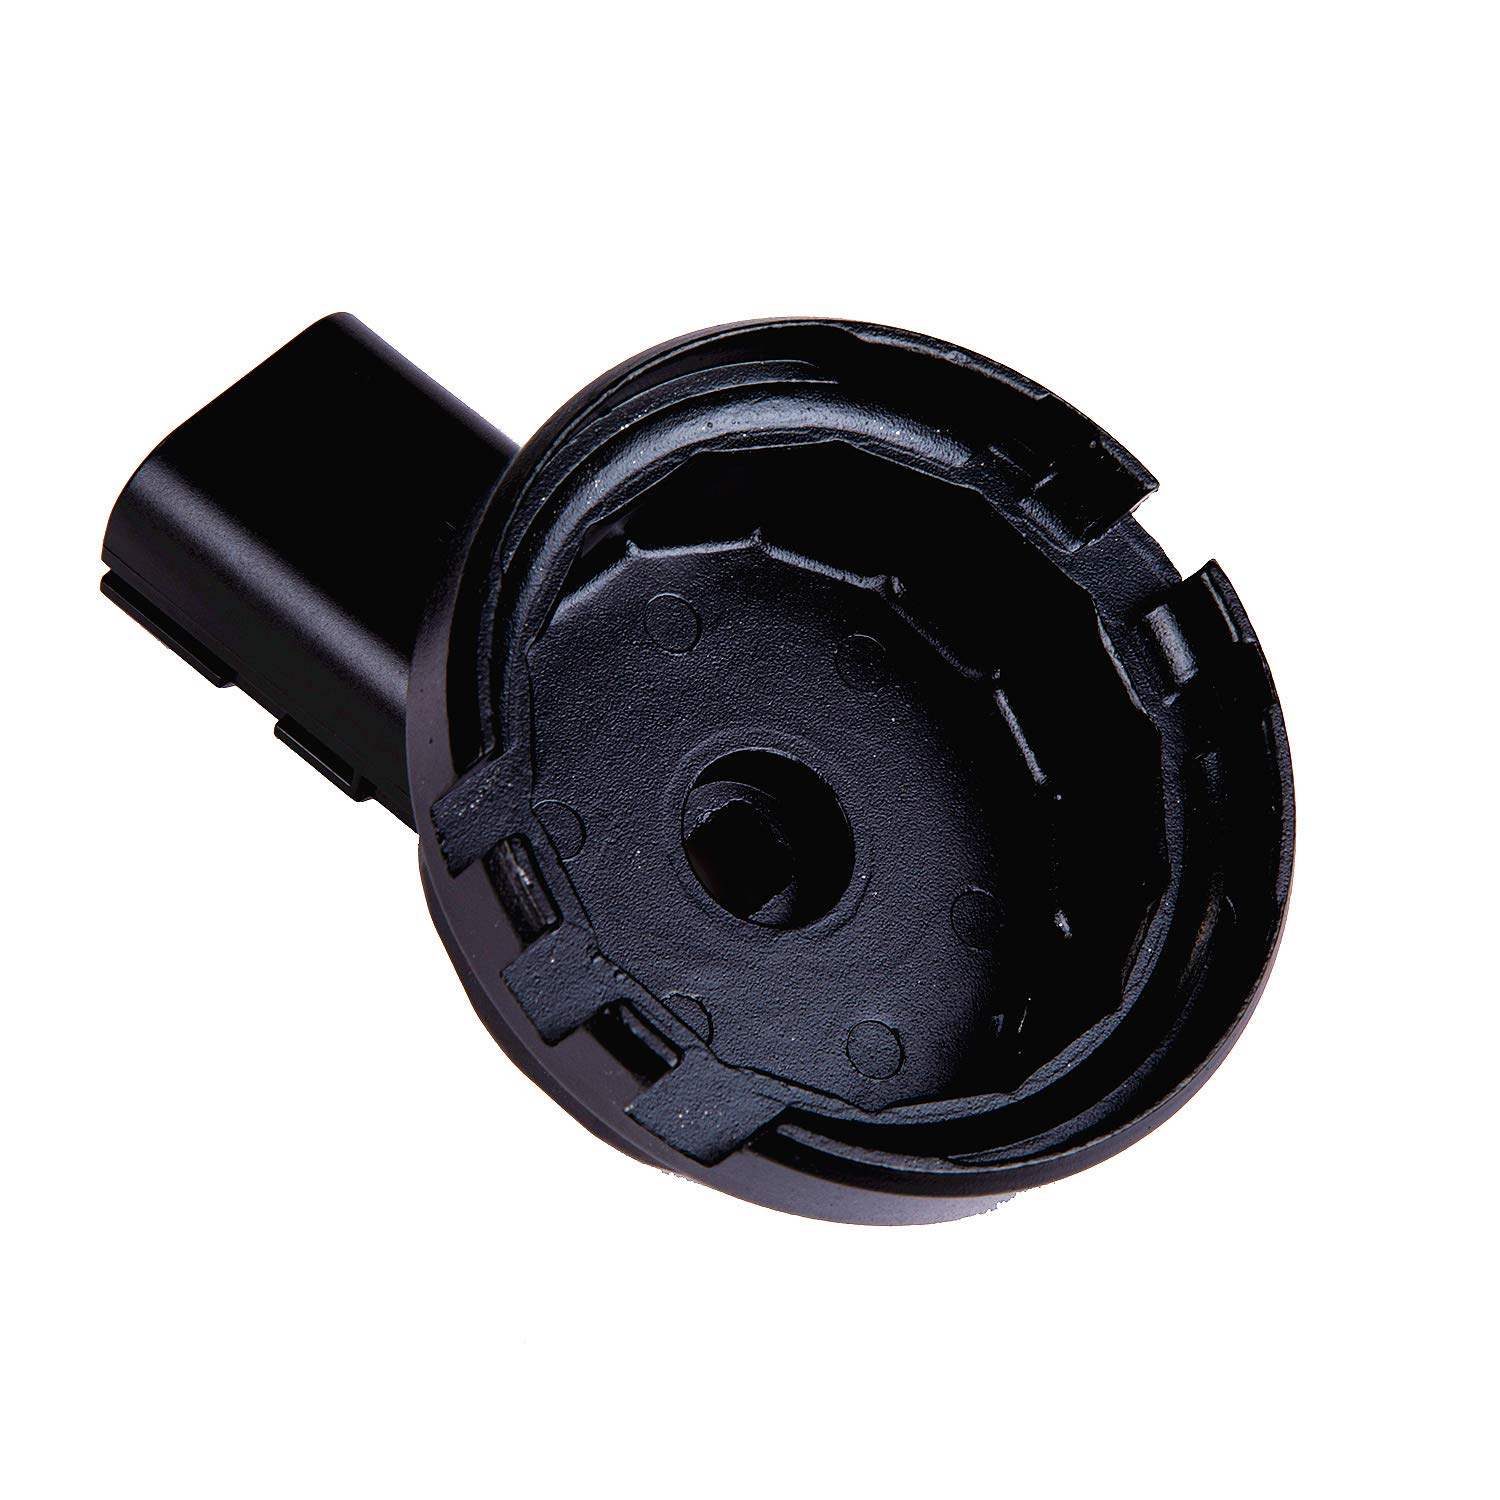 Perfect for Camry and Scion 2.0 To 5.7 Liter Engines with 64mm Cartridge Style Oil Filter System Detool Tools Oil Filter Wrench for Toyota Tundra Sienna and so o RAV4 Tacoma Highlander Lexus